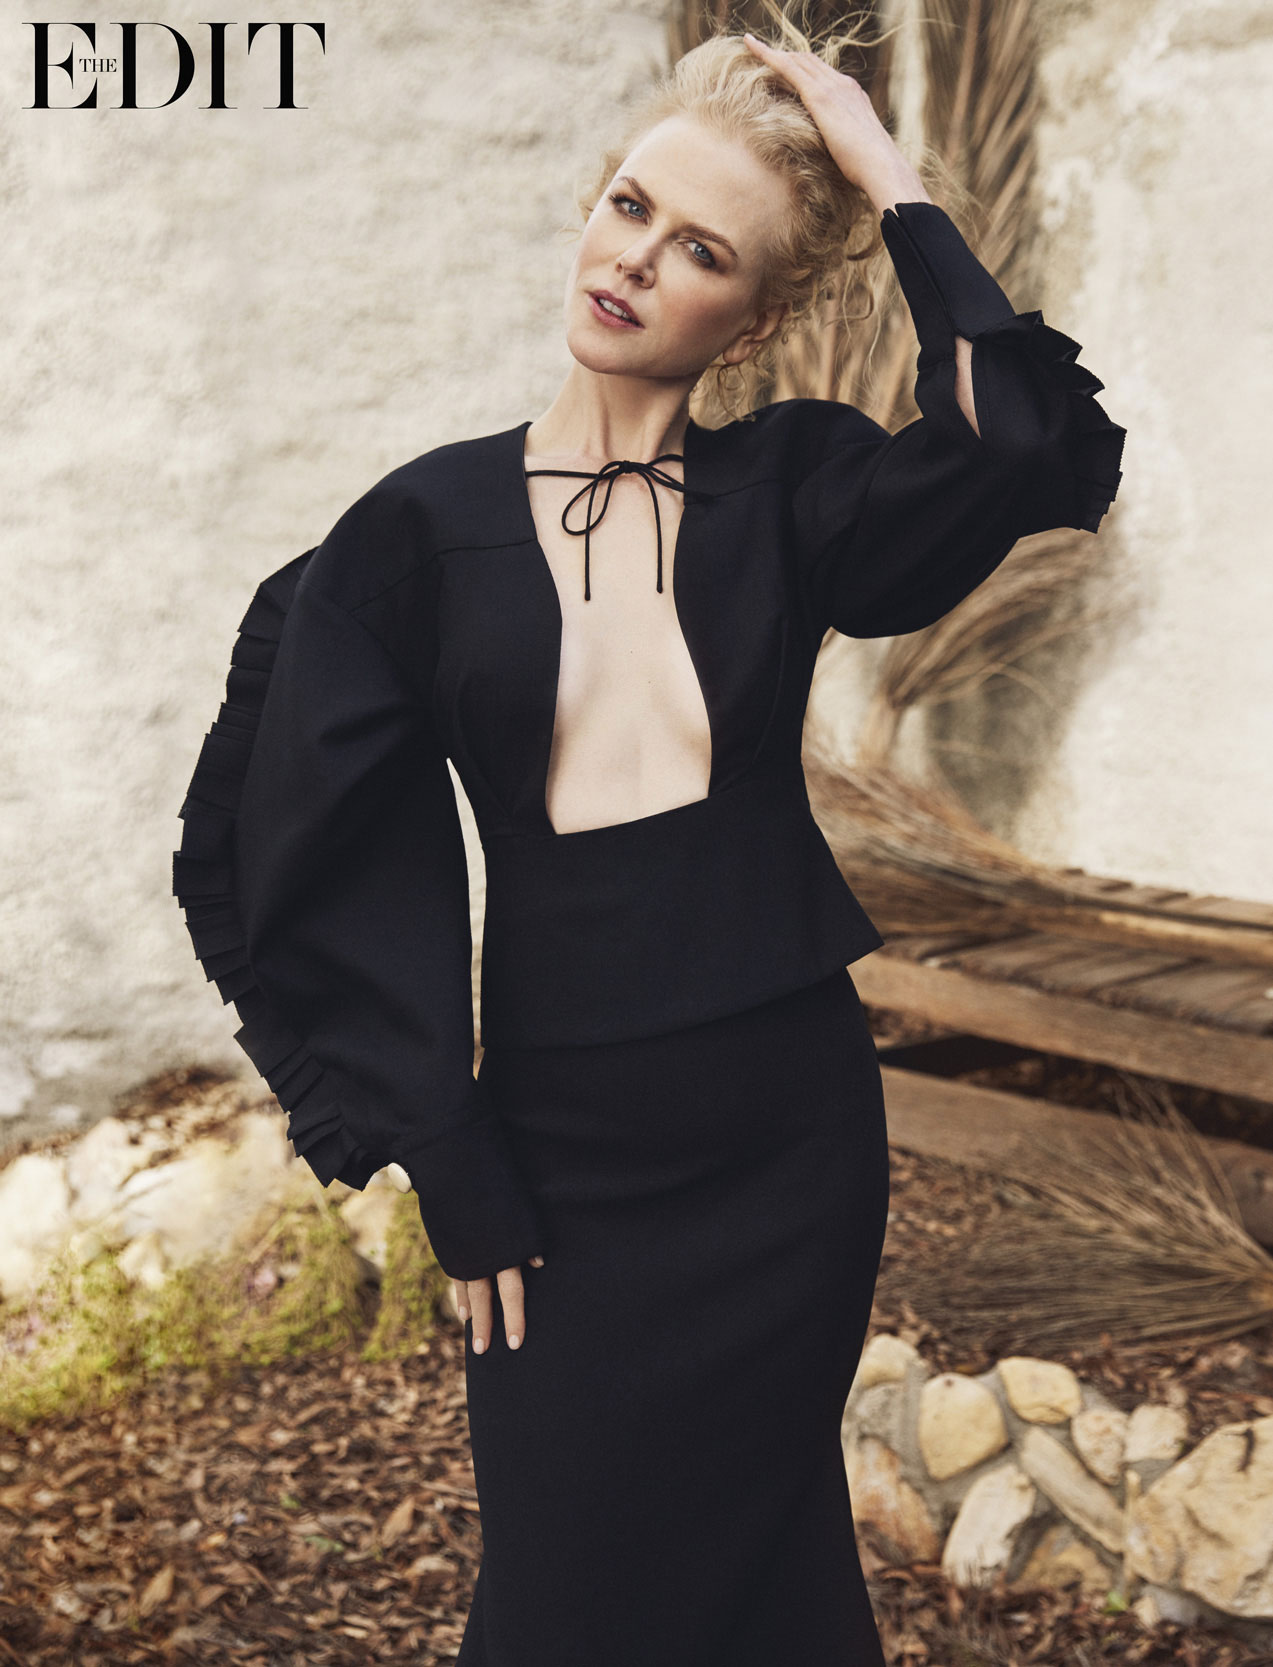 Nicole Kidman wears top by Jacquemus and skirt by Ellery. Photographed by Yelena Yemchuk for The EDIT, NET-A-PORTER.COM.